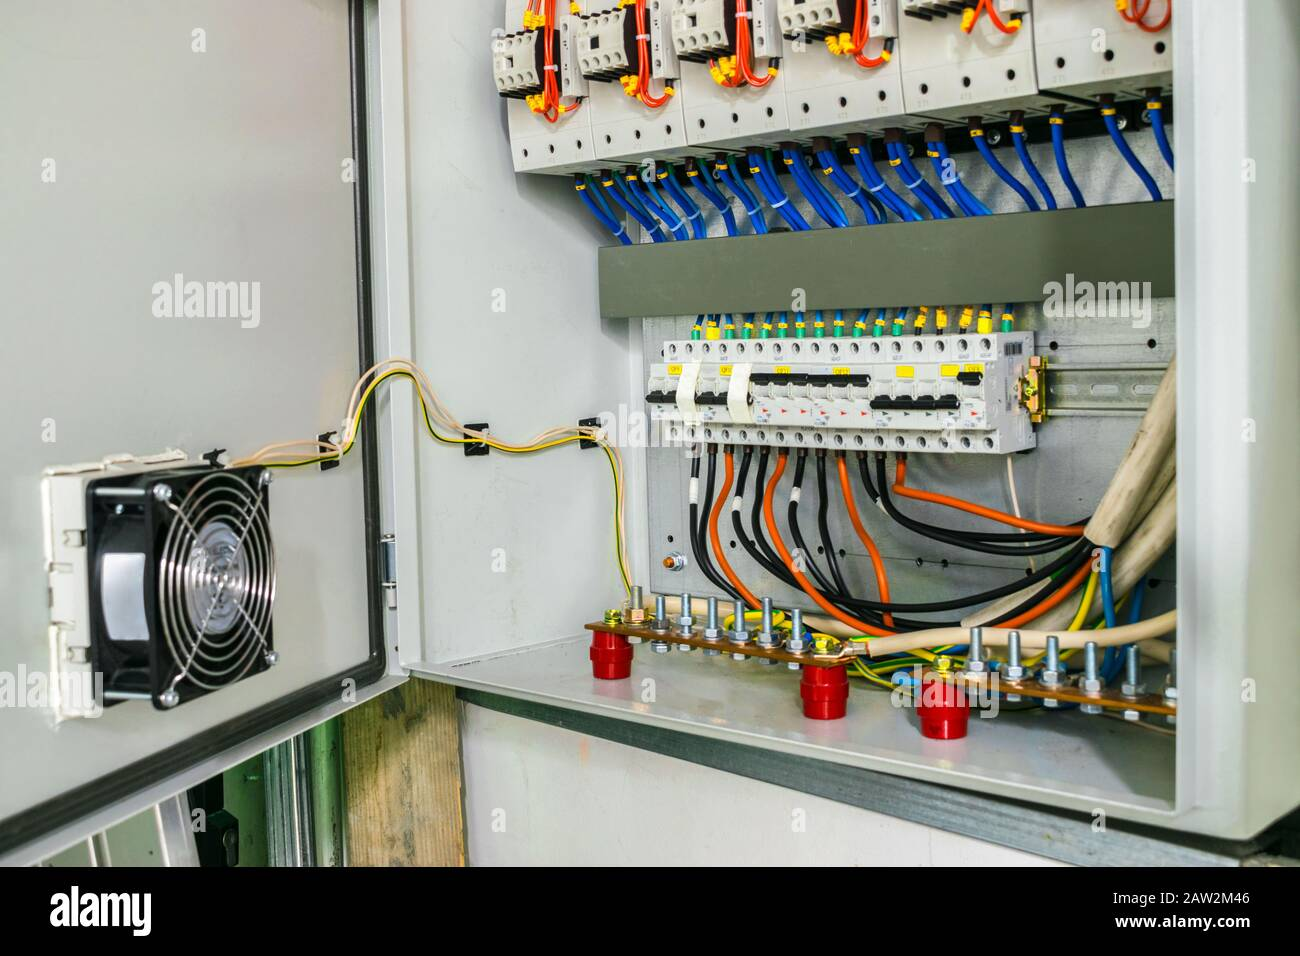 Electric power circuit breakers are in the fuse box. The wires with the  terminals are grounded in the electrical cabinet. Modern safe wiring Stock  Photo - AlamyAlamy